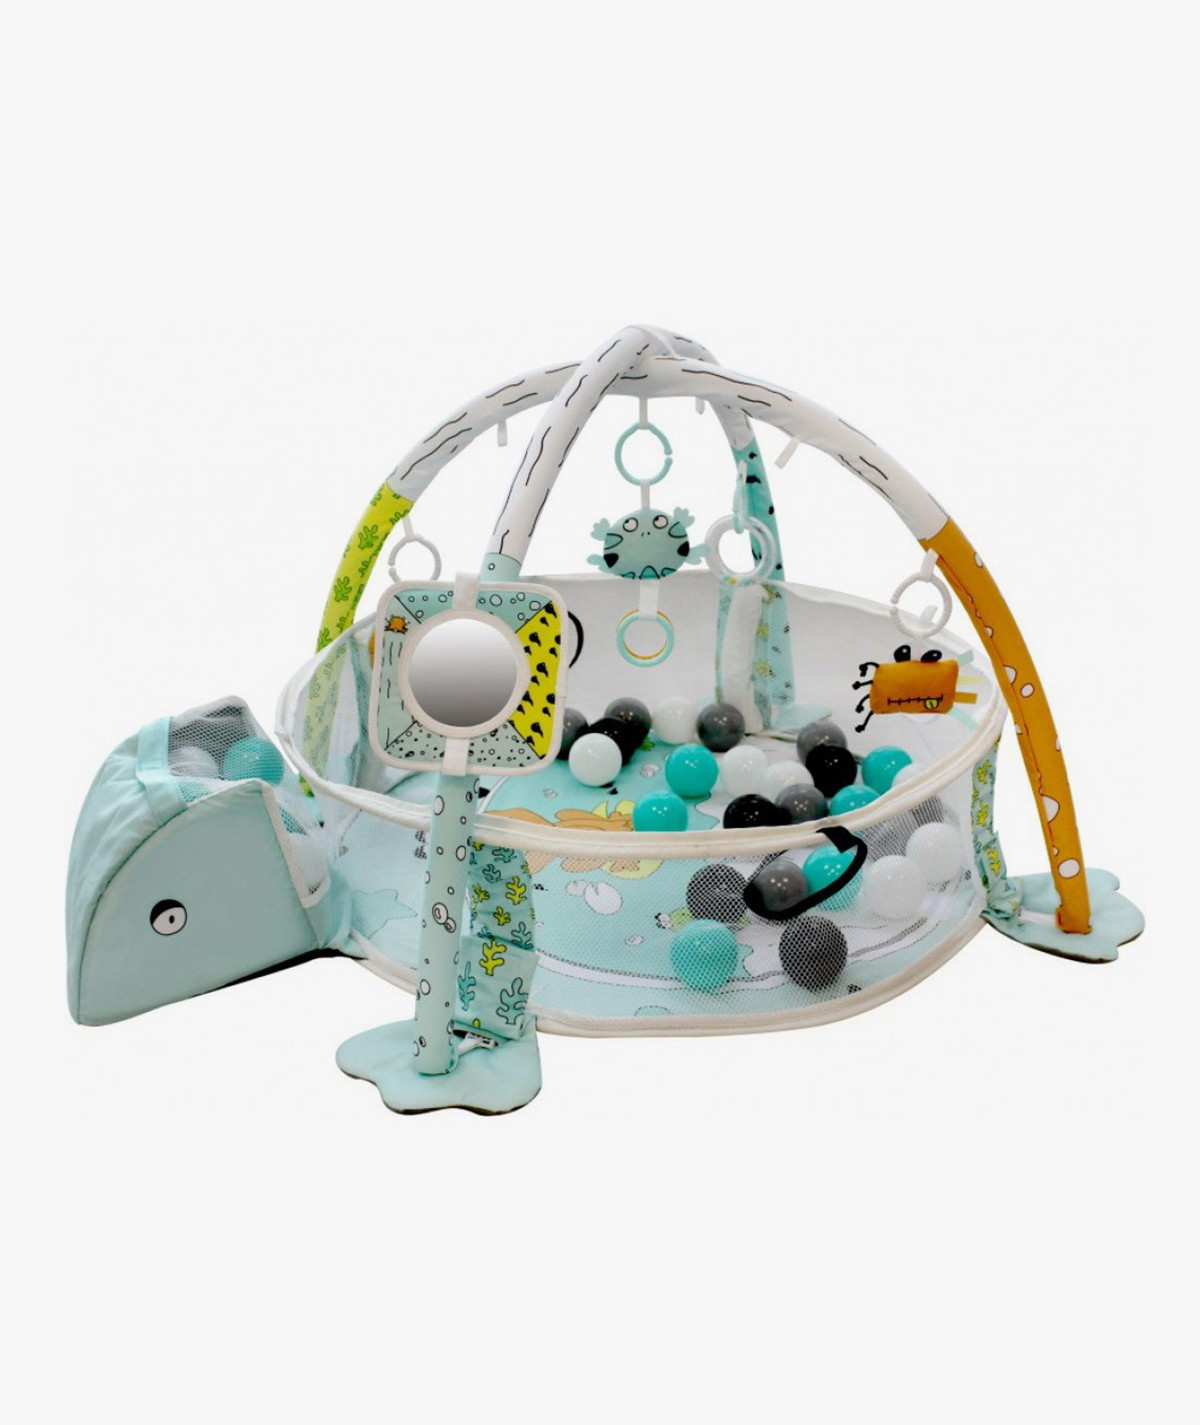 Ball Pit and Activity Gym